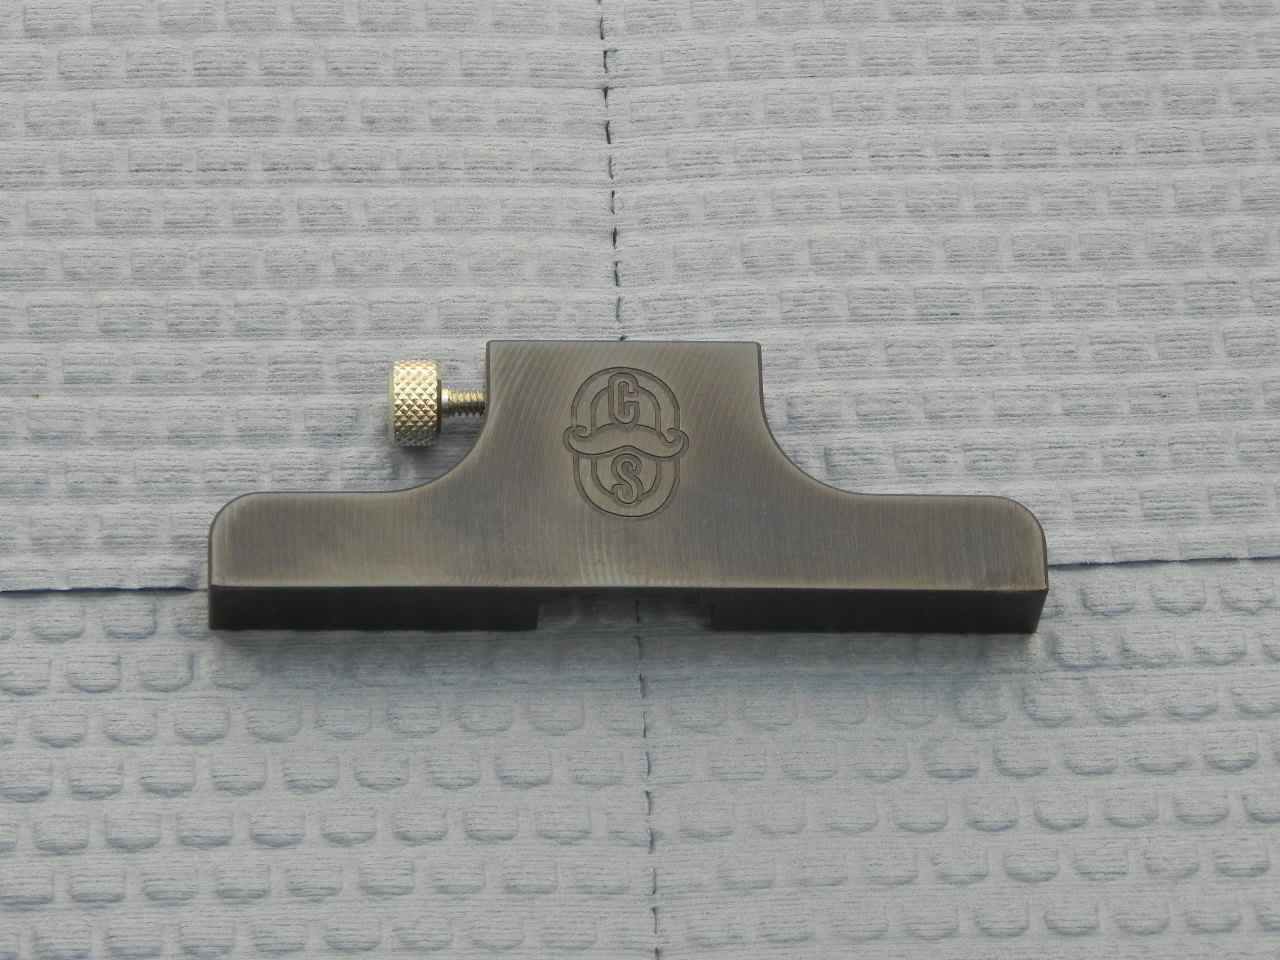 CS1864 - Caliper base for gauging depths